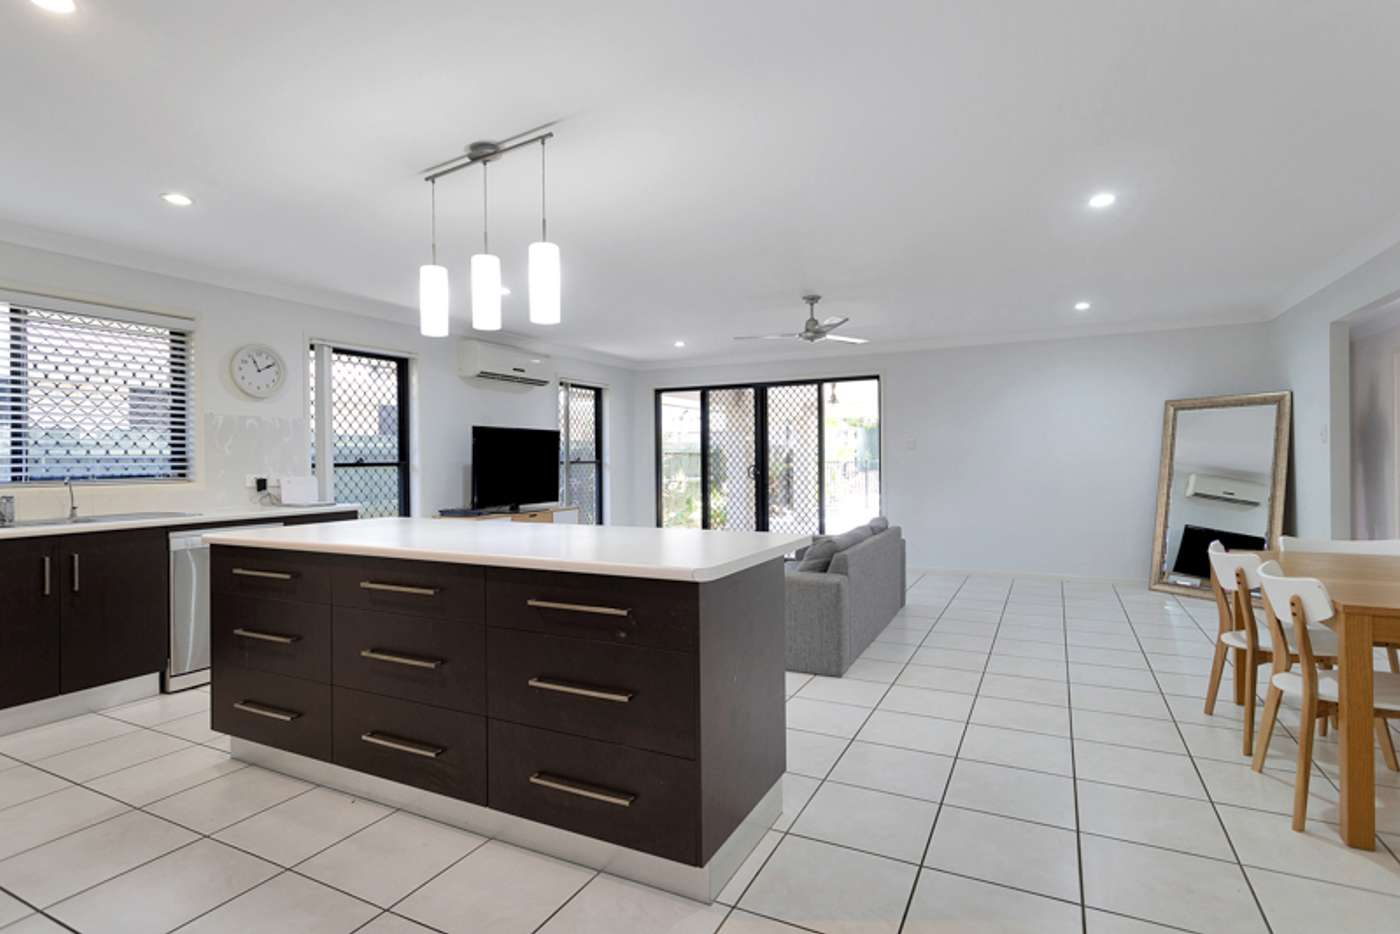 Sixth view of Homely house listing, 30 Schooner Avenue, Bucasia QLD 4750